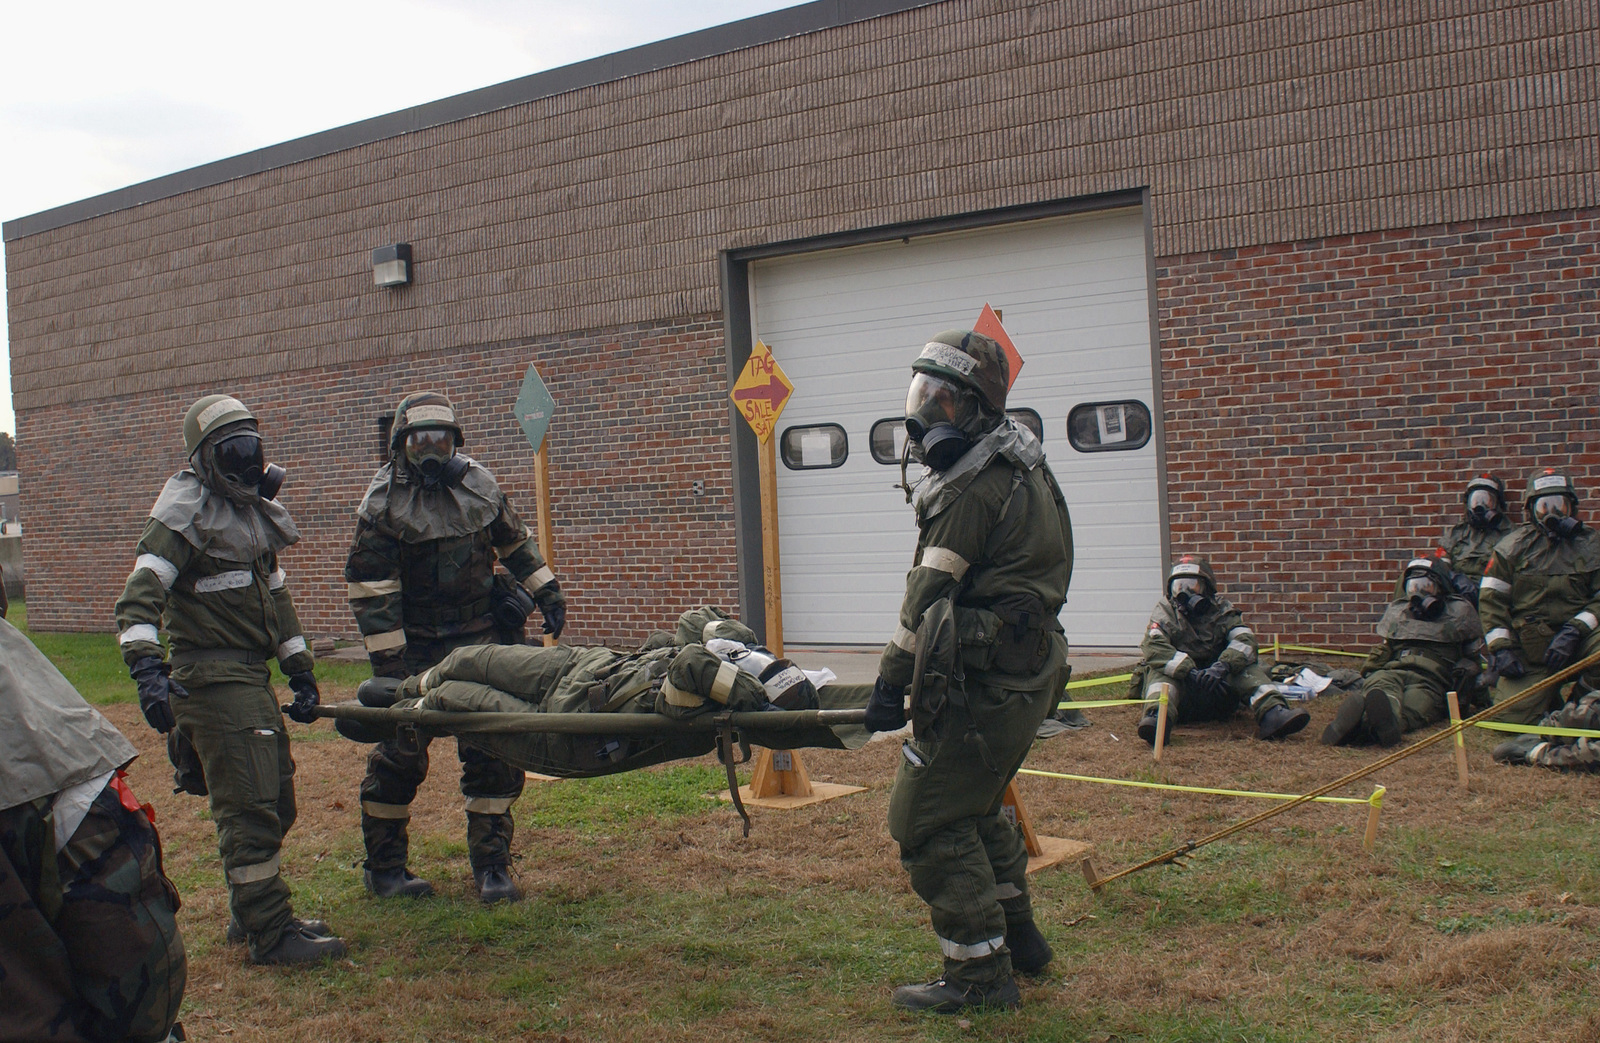 US Air Force (USAF) Medics in Mission-Oriented Protective Posture